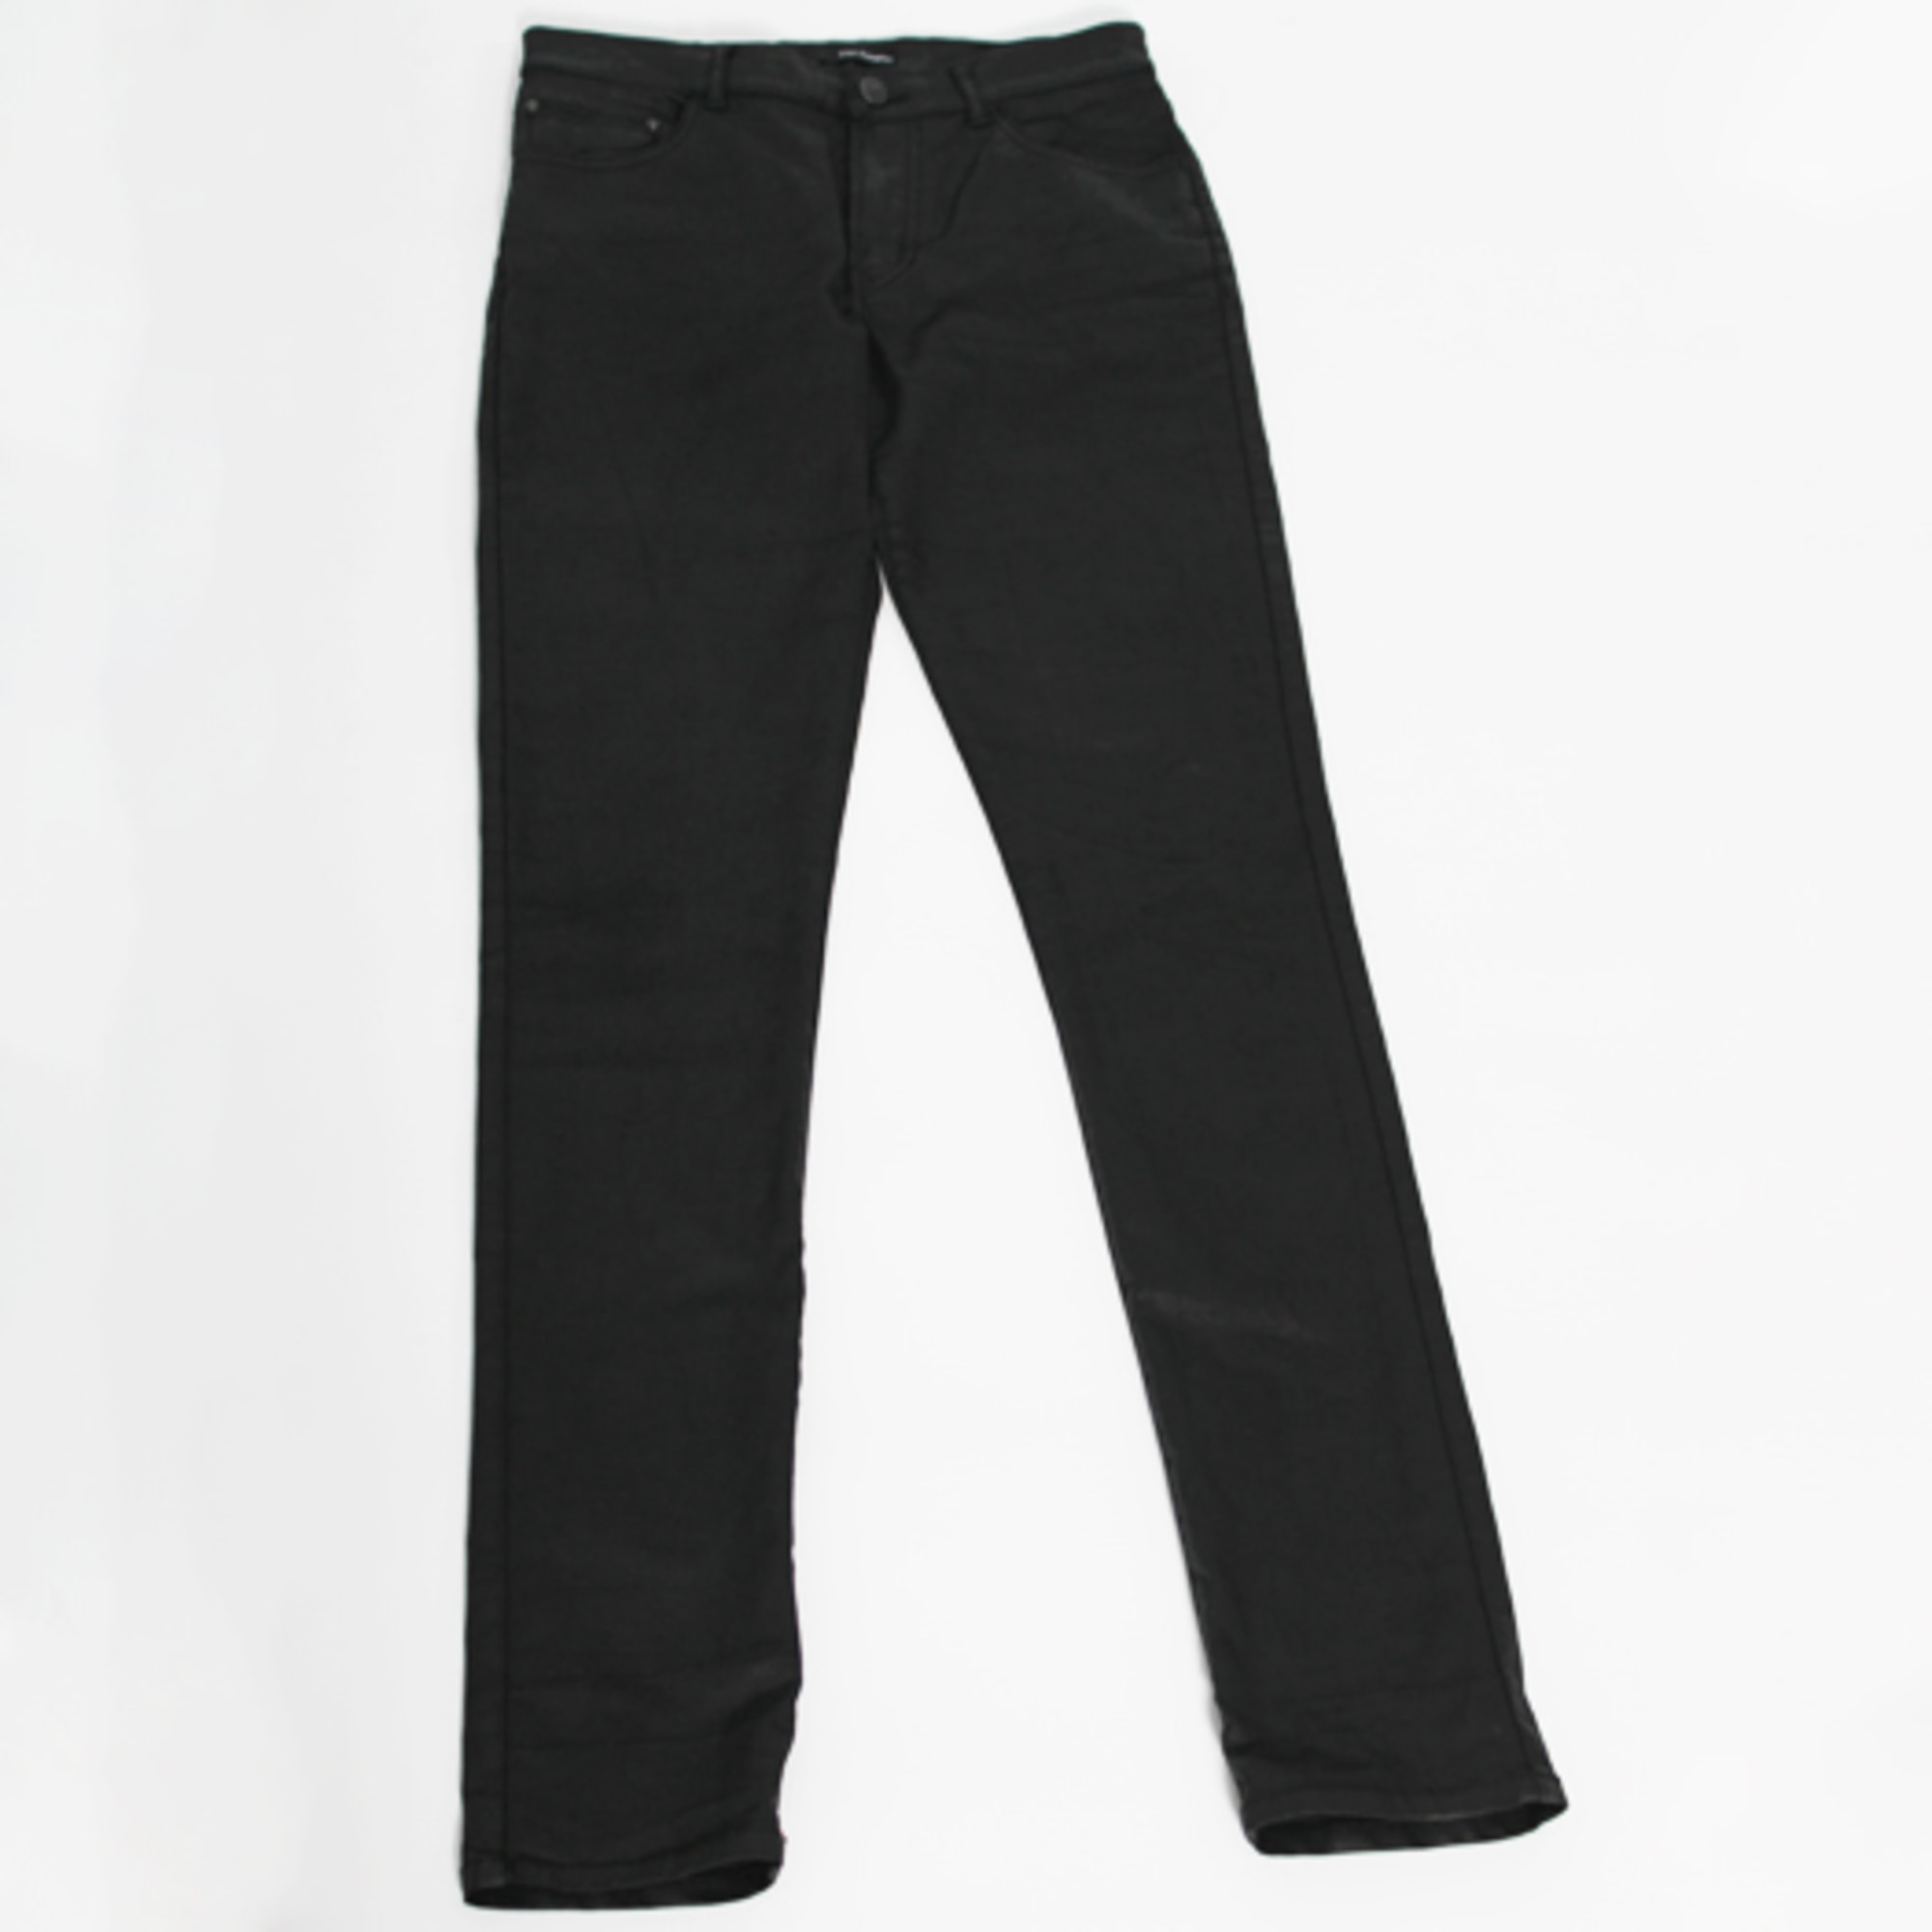 Jeans slim THE KOOPLES Noir